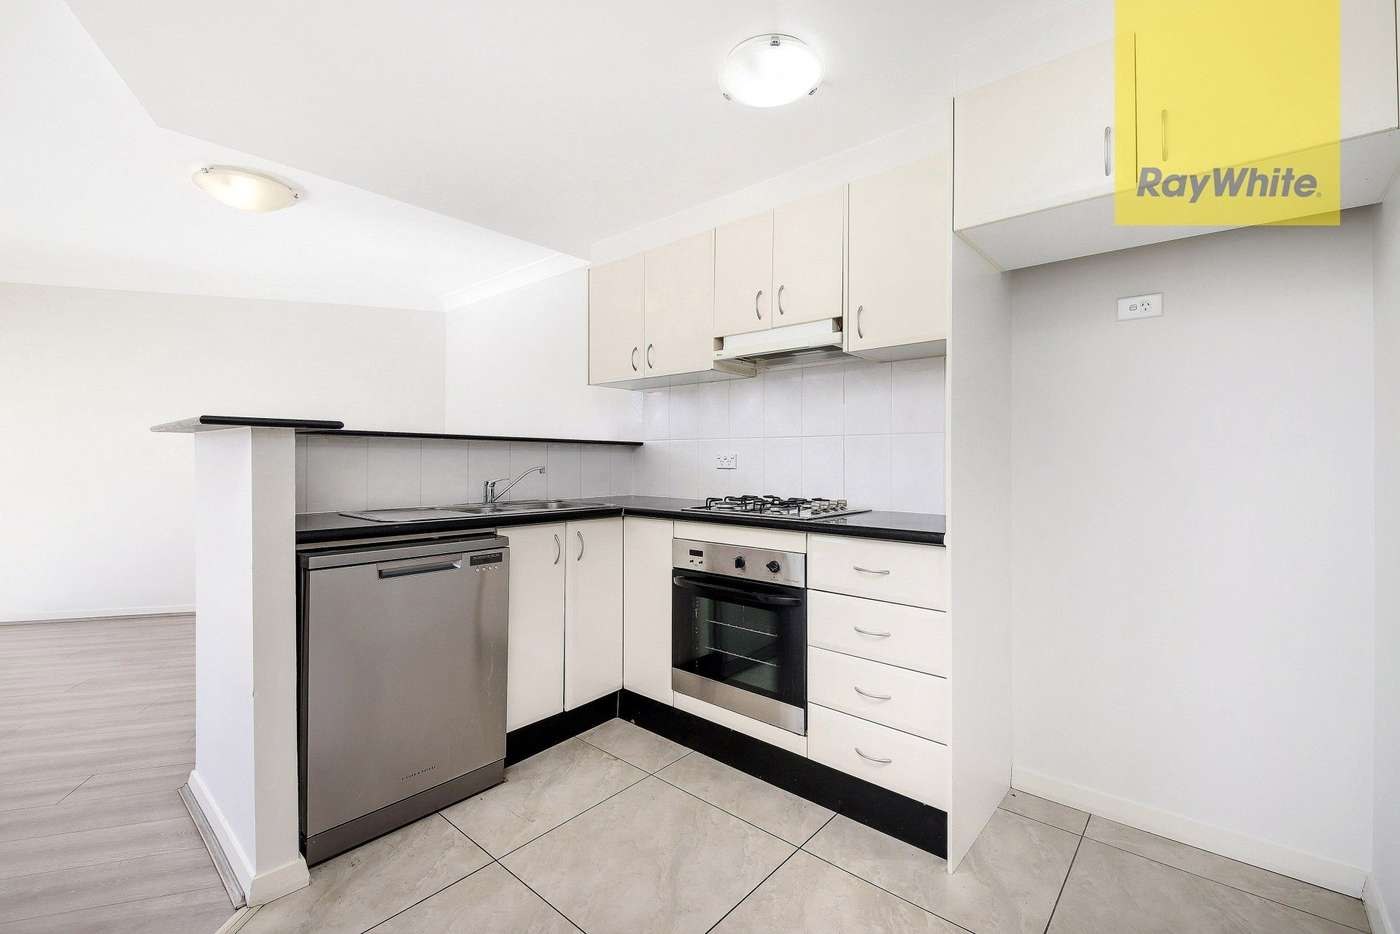 Fifth view of Homely apartment listing, 5/32 Hassall Street, Parramatta NSW 2150